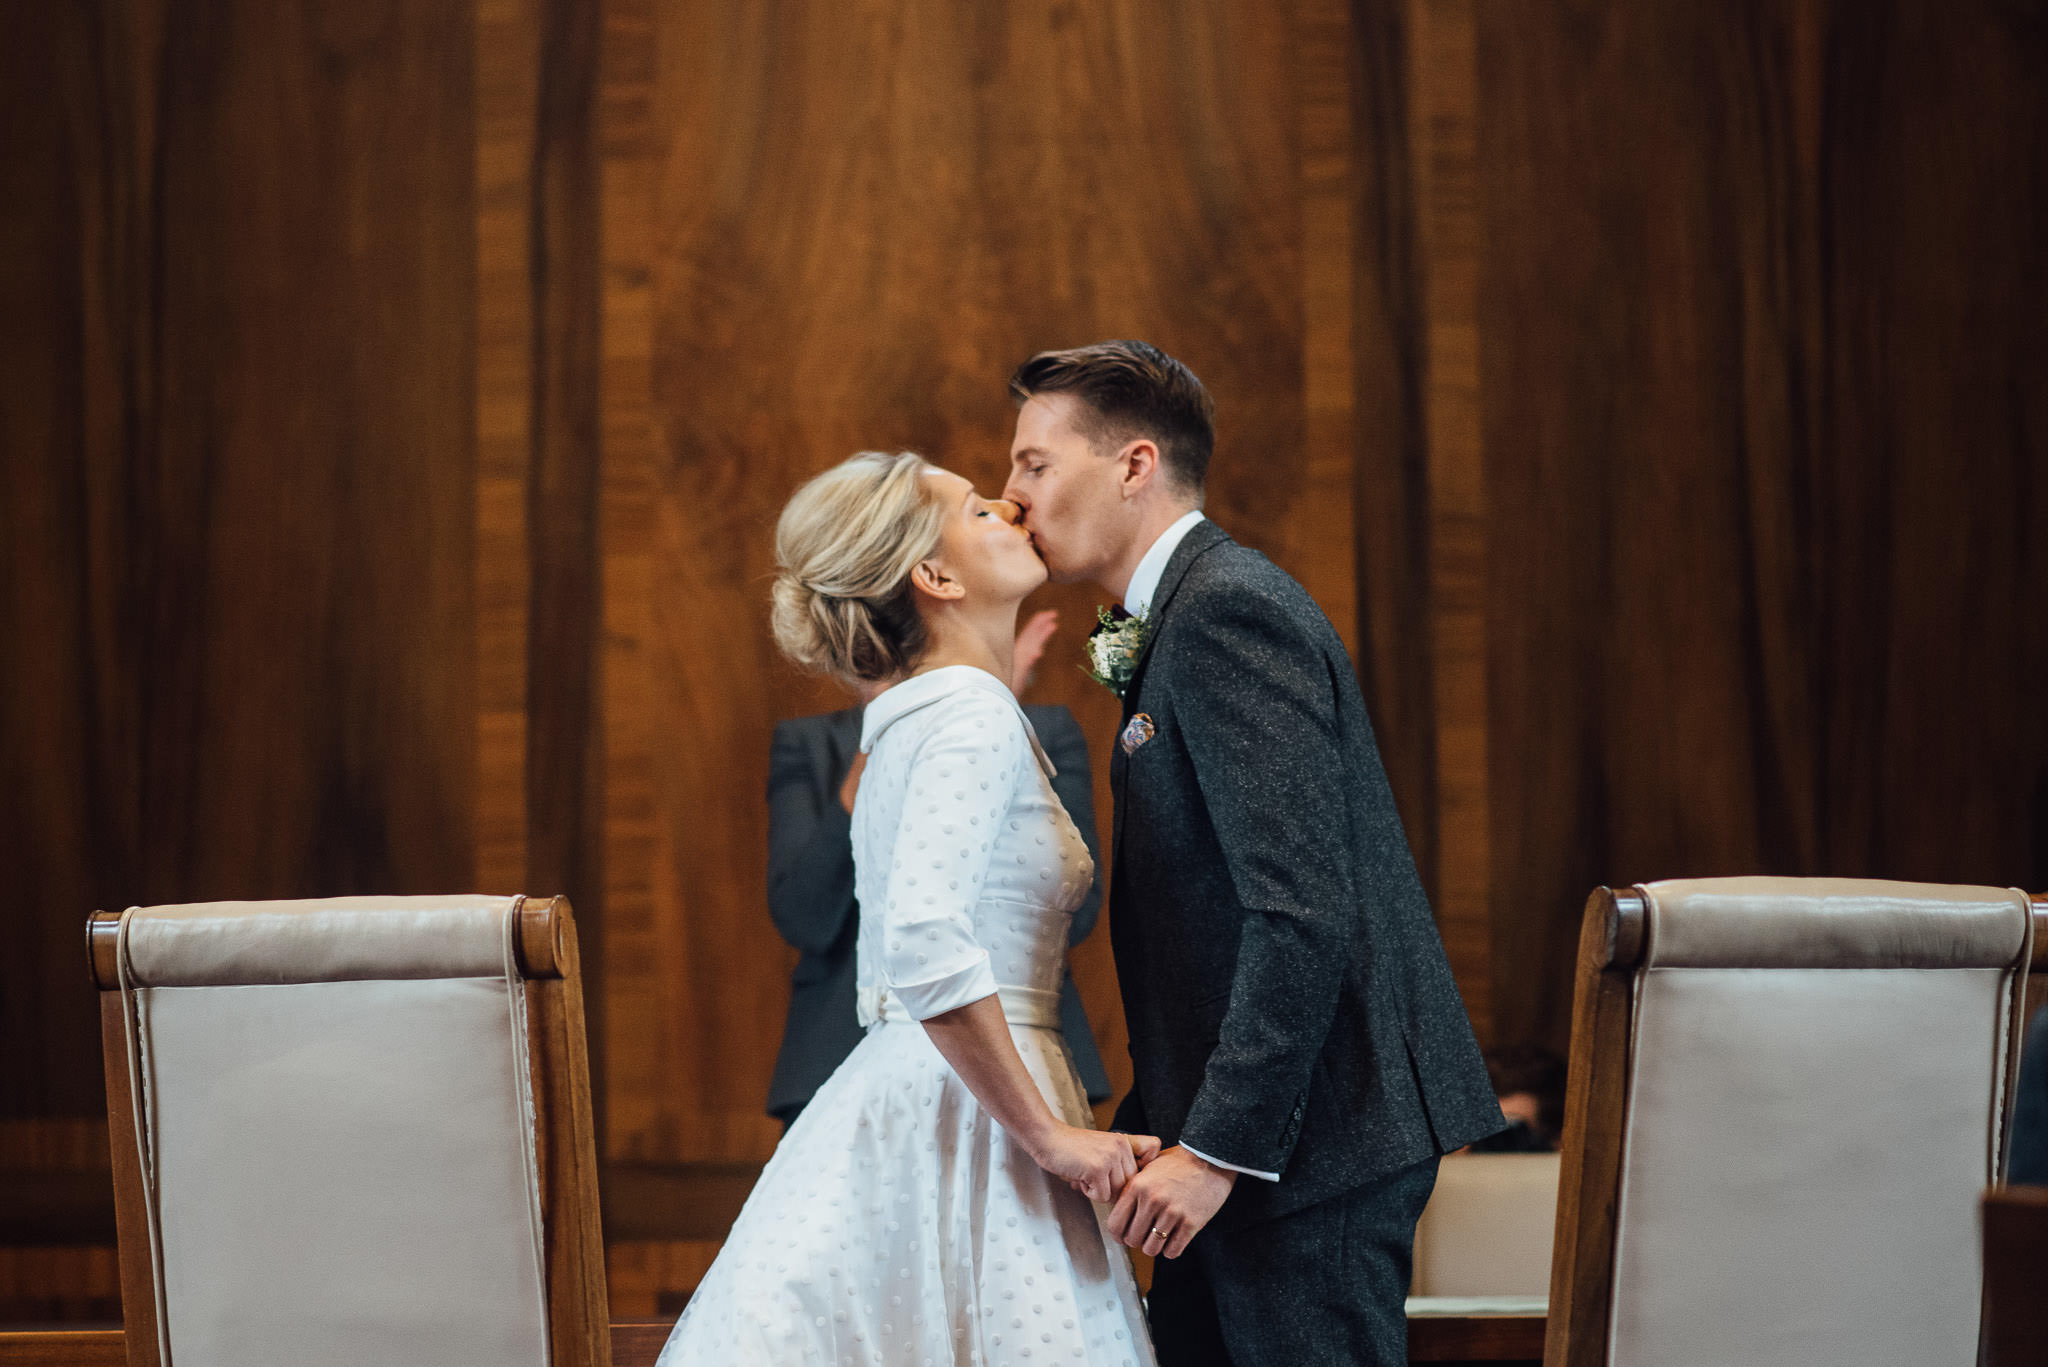 Humanist wedding ceremony in stoke newington town hall wedding by creative and alternative london wedding photographer the shannons photography